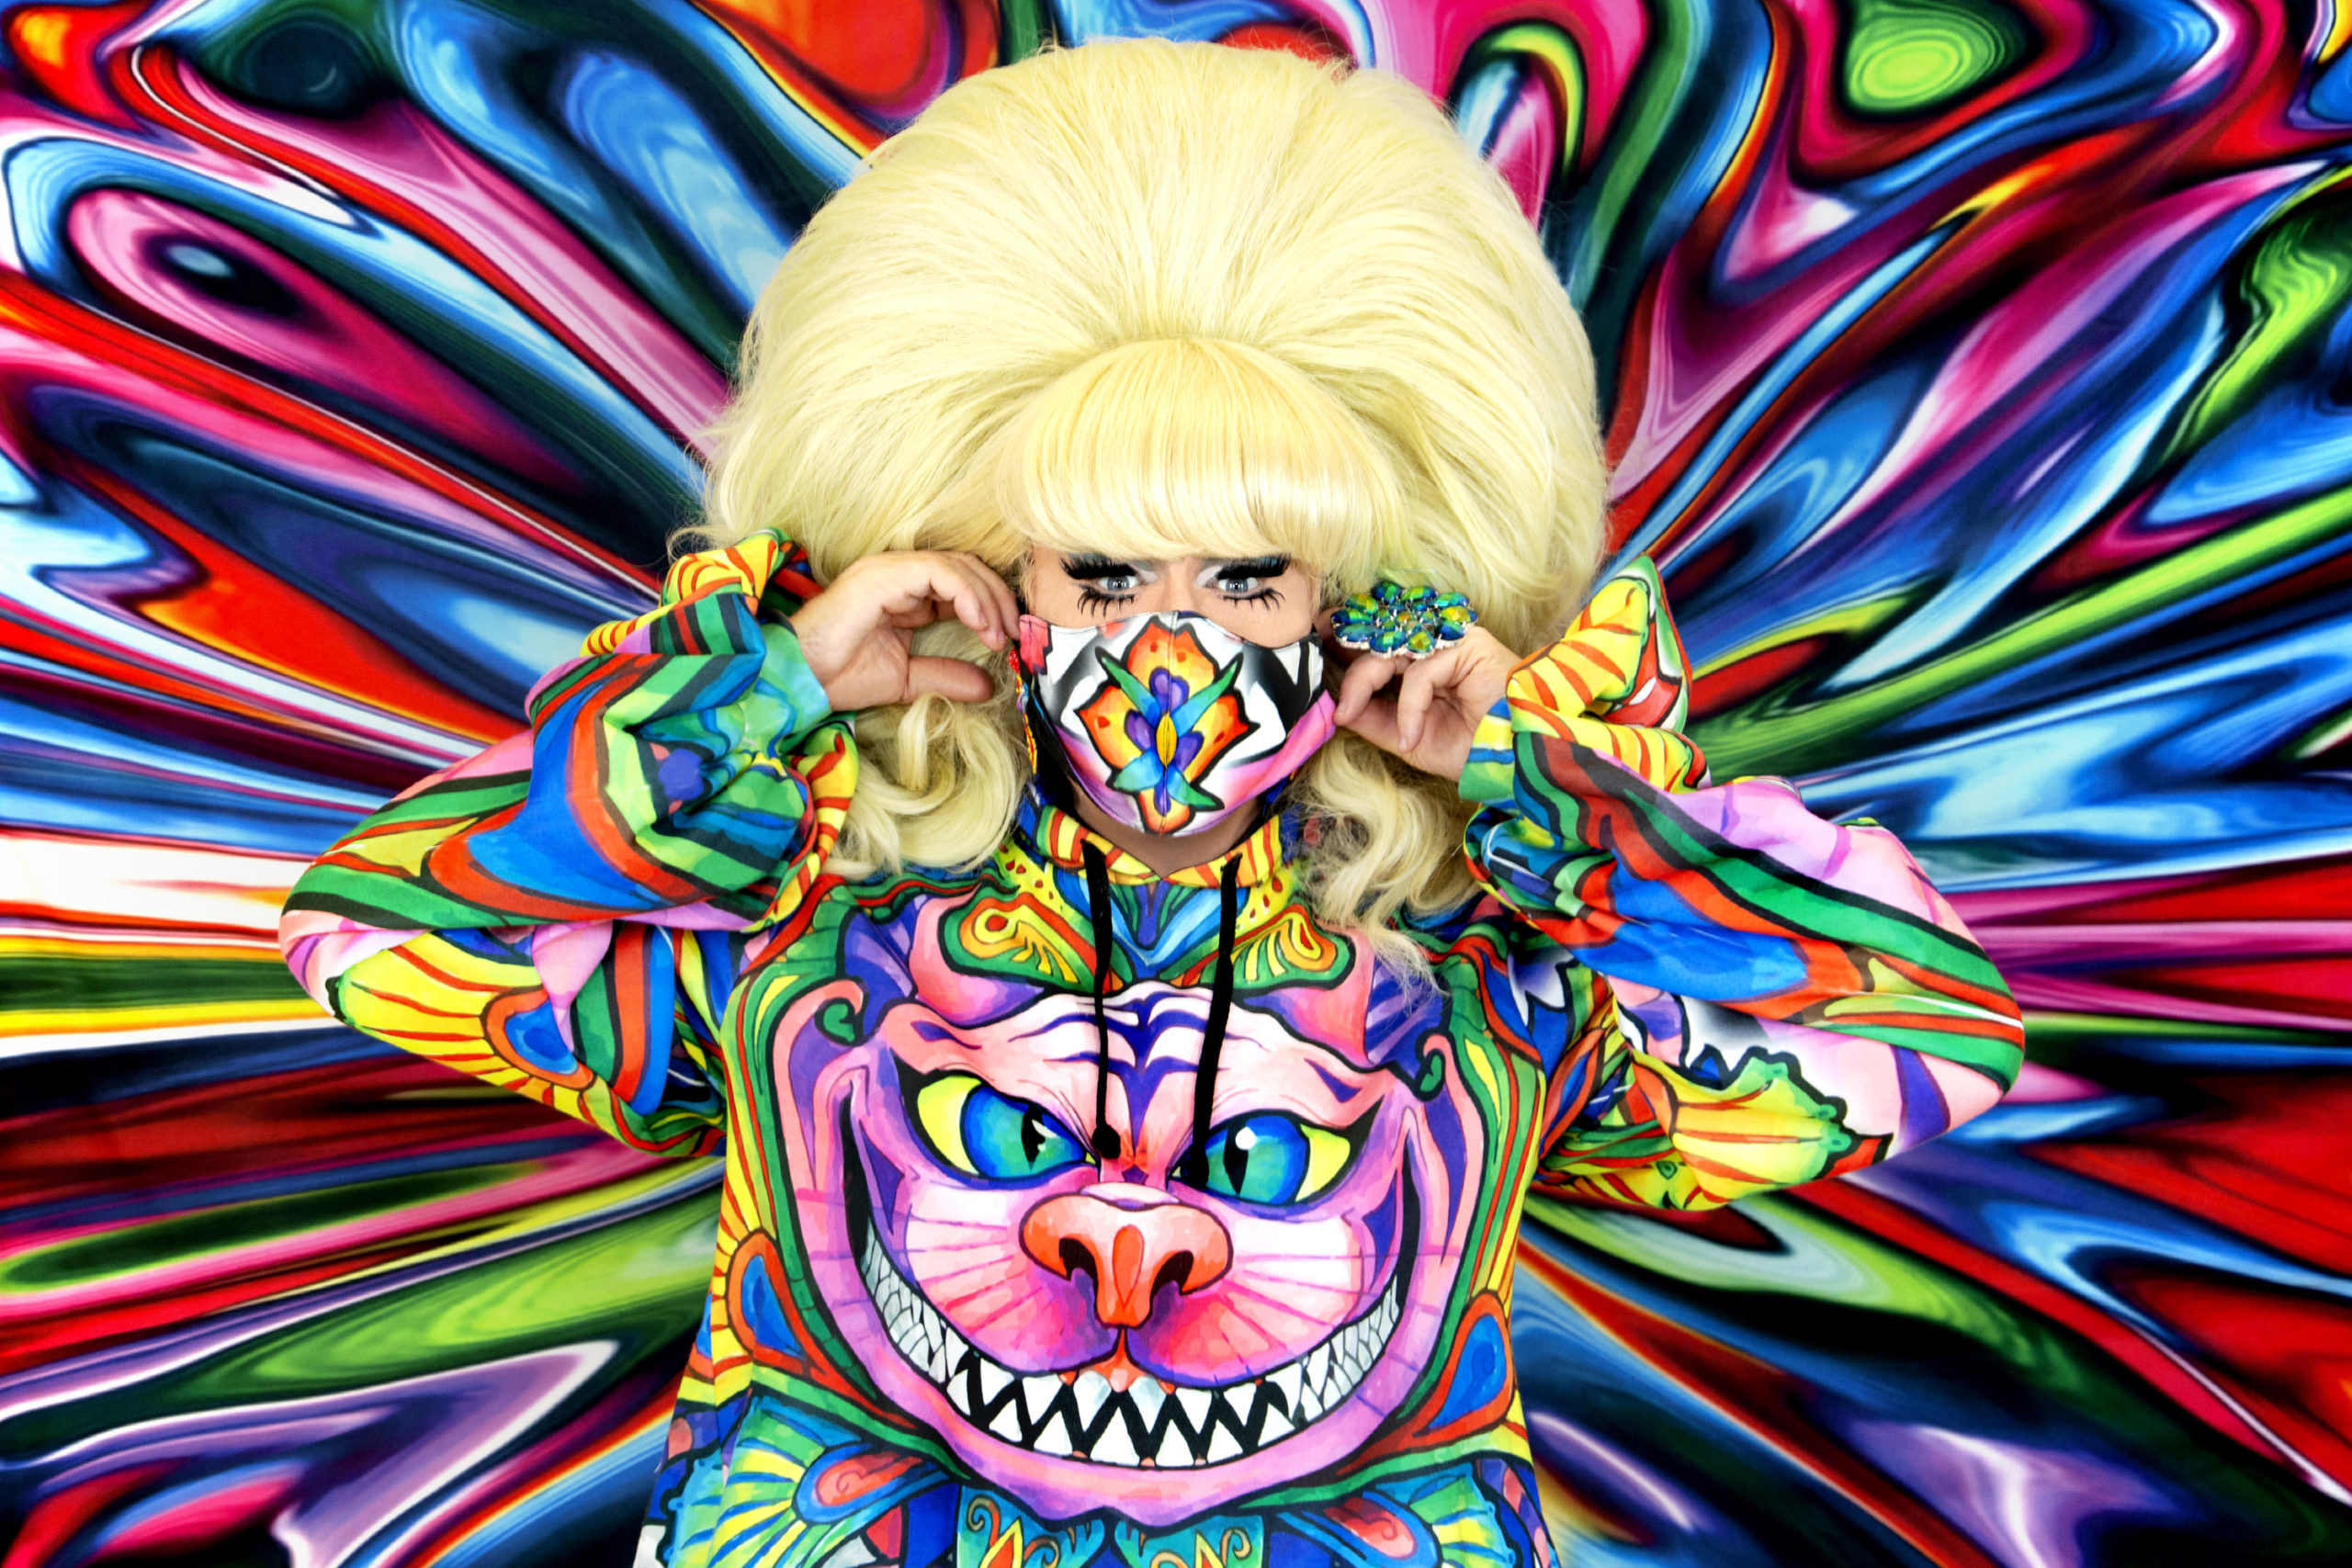 LADY BUNNY – The COVID Queen at the Drive-In